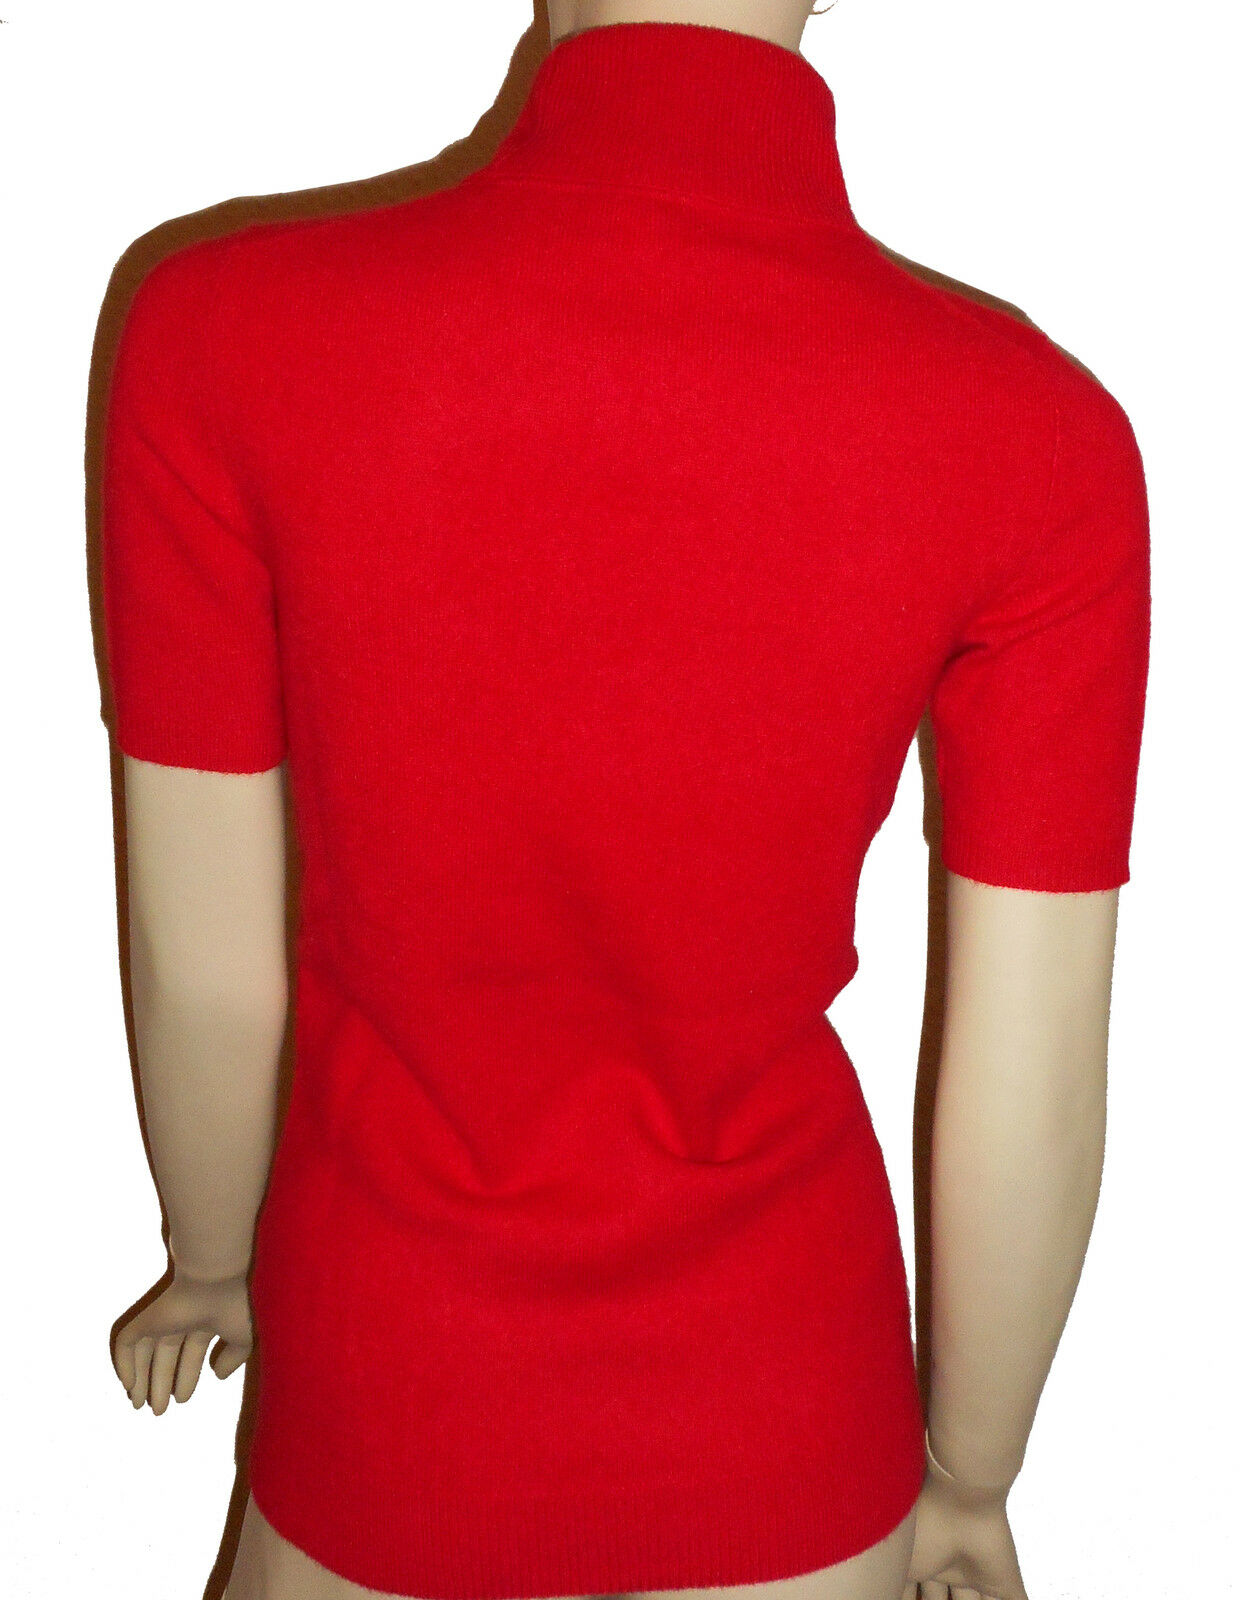 Luxe Oh ` Dor 100% Cachemire Manches Courtes Pull Pull Courtes de Classic Rouge 34 - 52 Xs/S f7f4e3